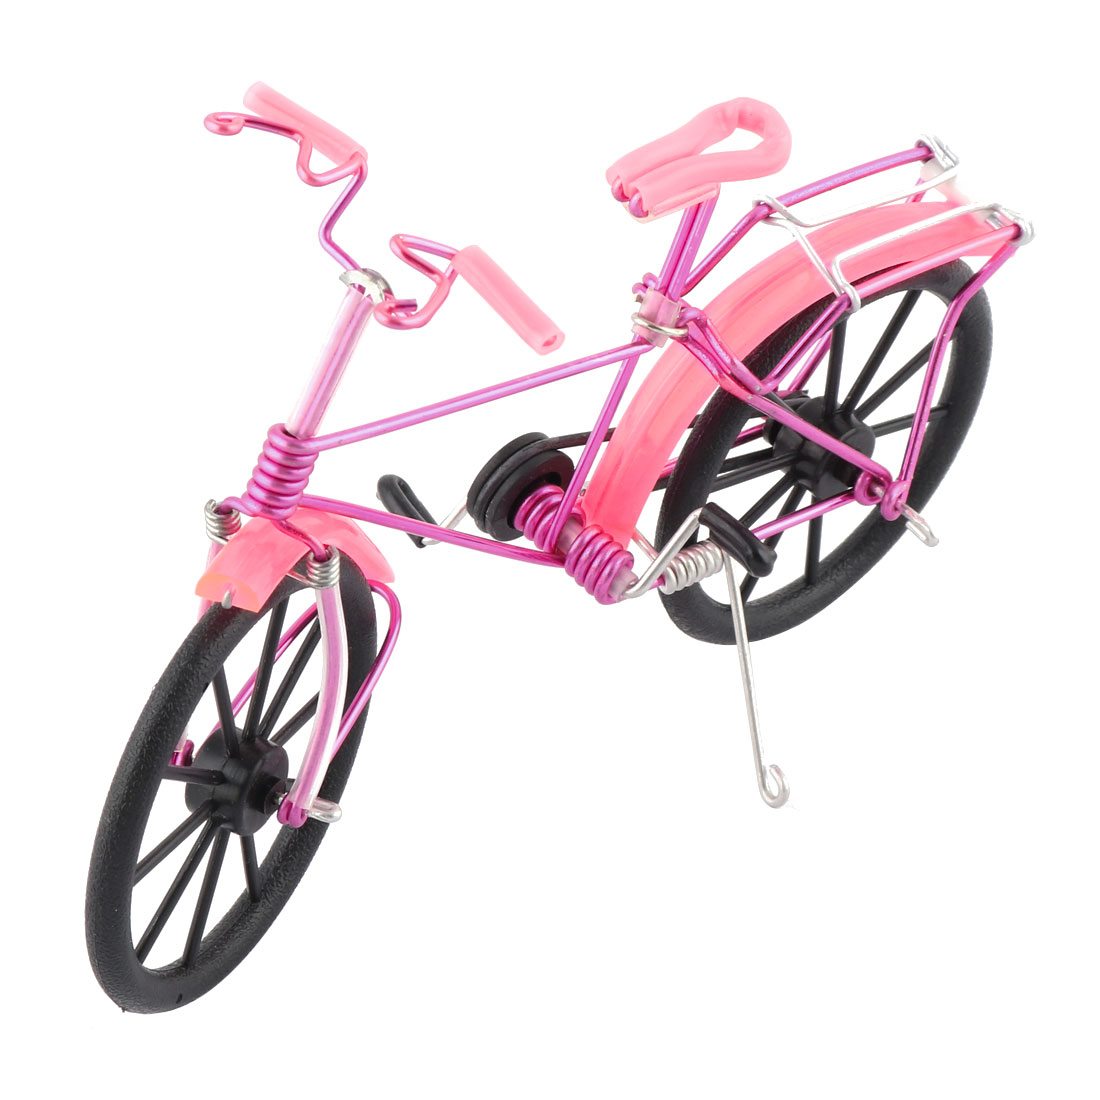 Aluminium Alloy Vintage Style Desk Decor Handmade Toy Gift Bicycle Model Fuchsia